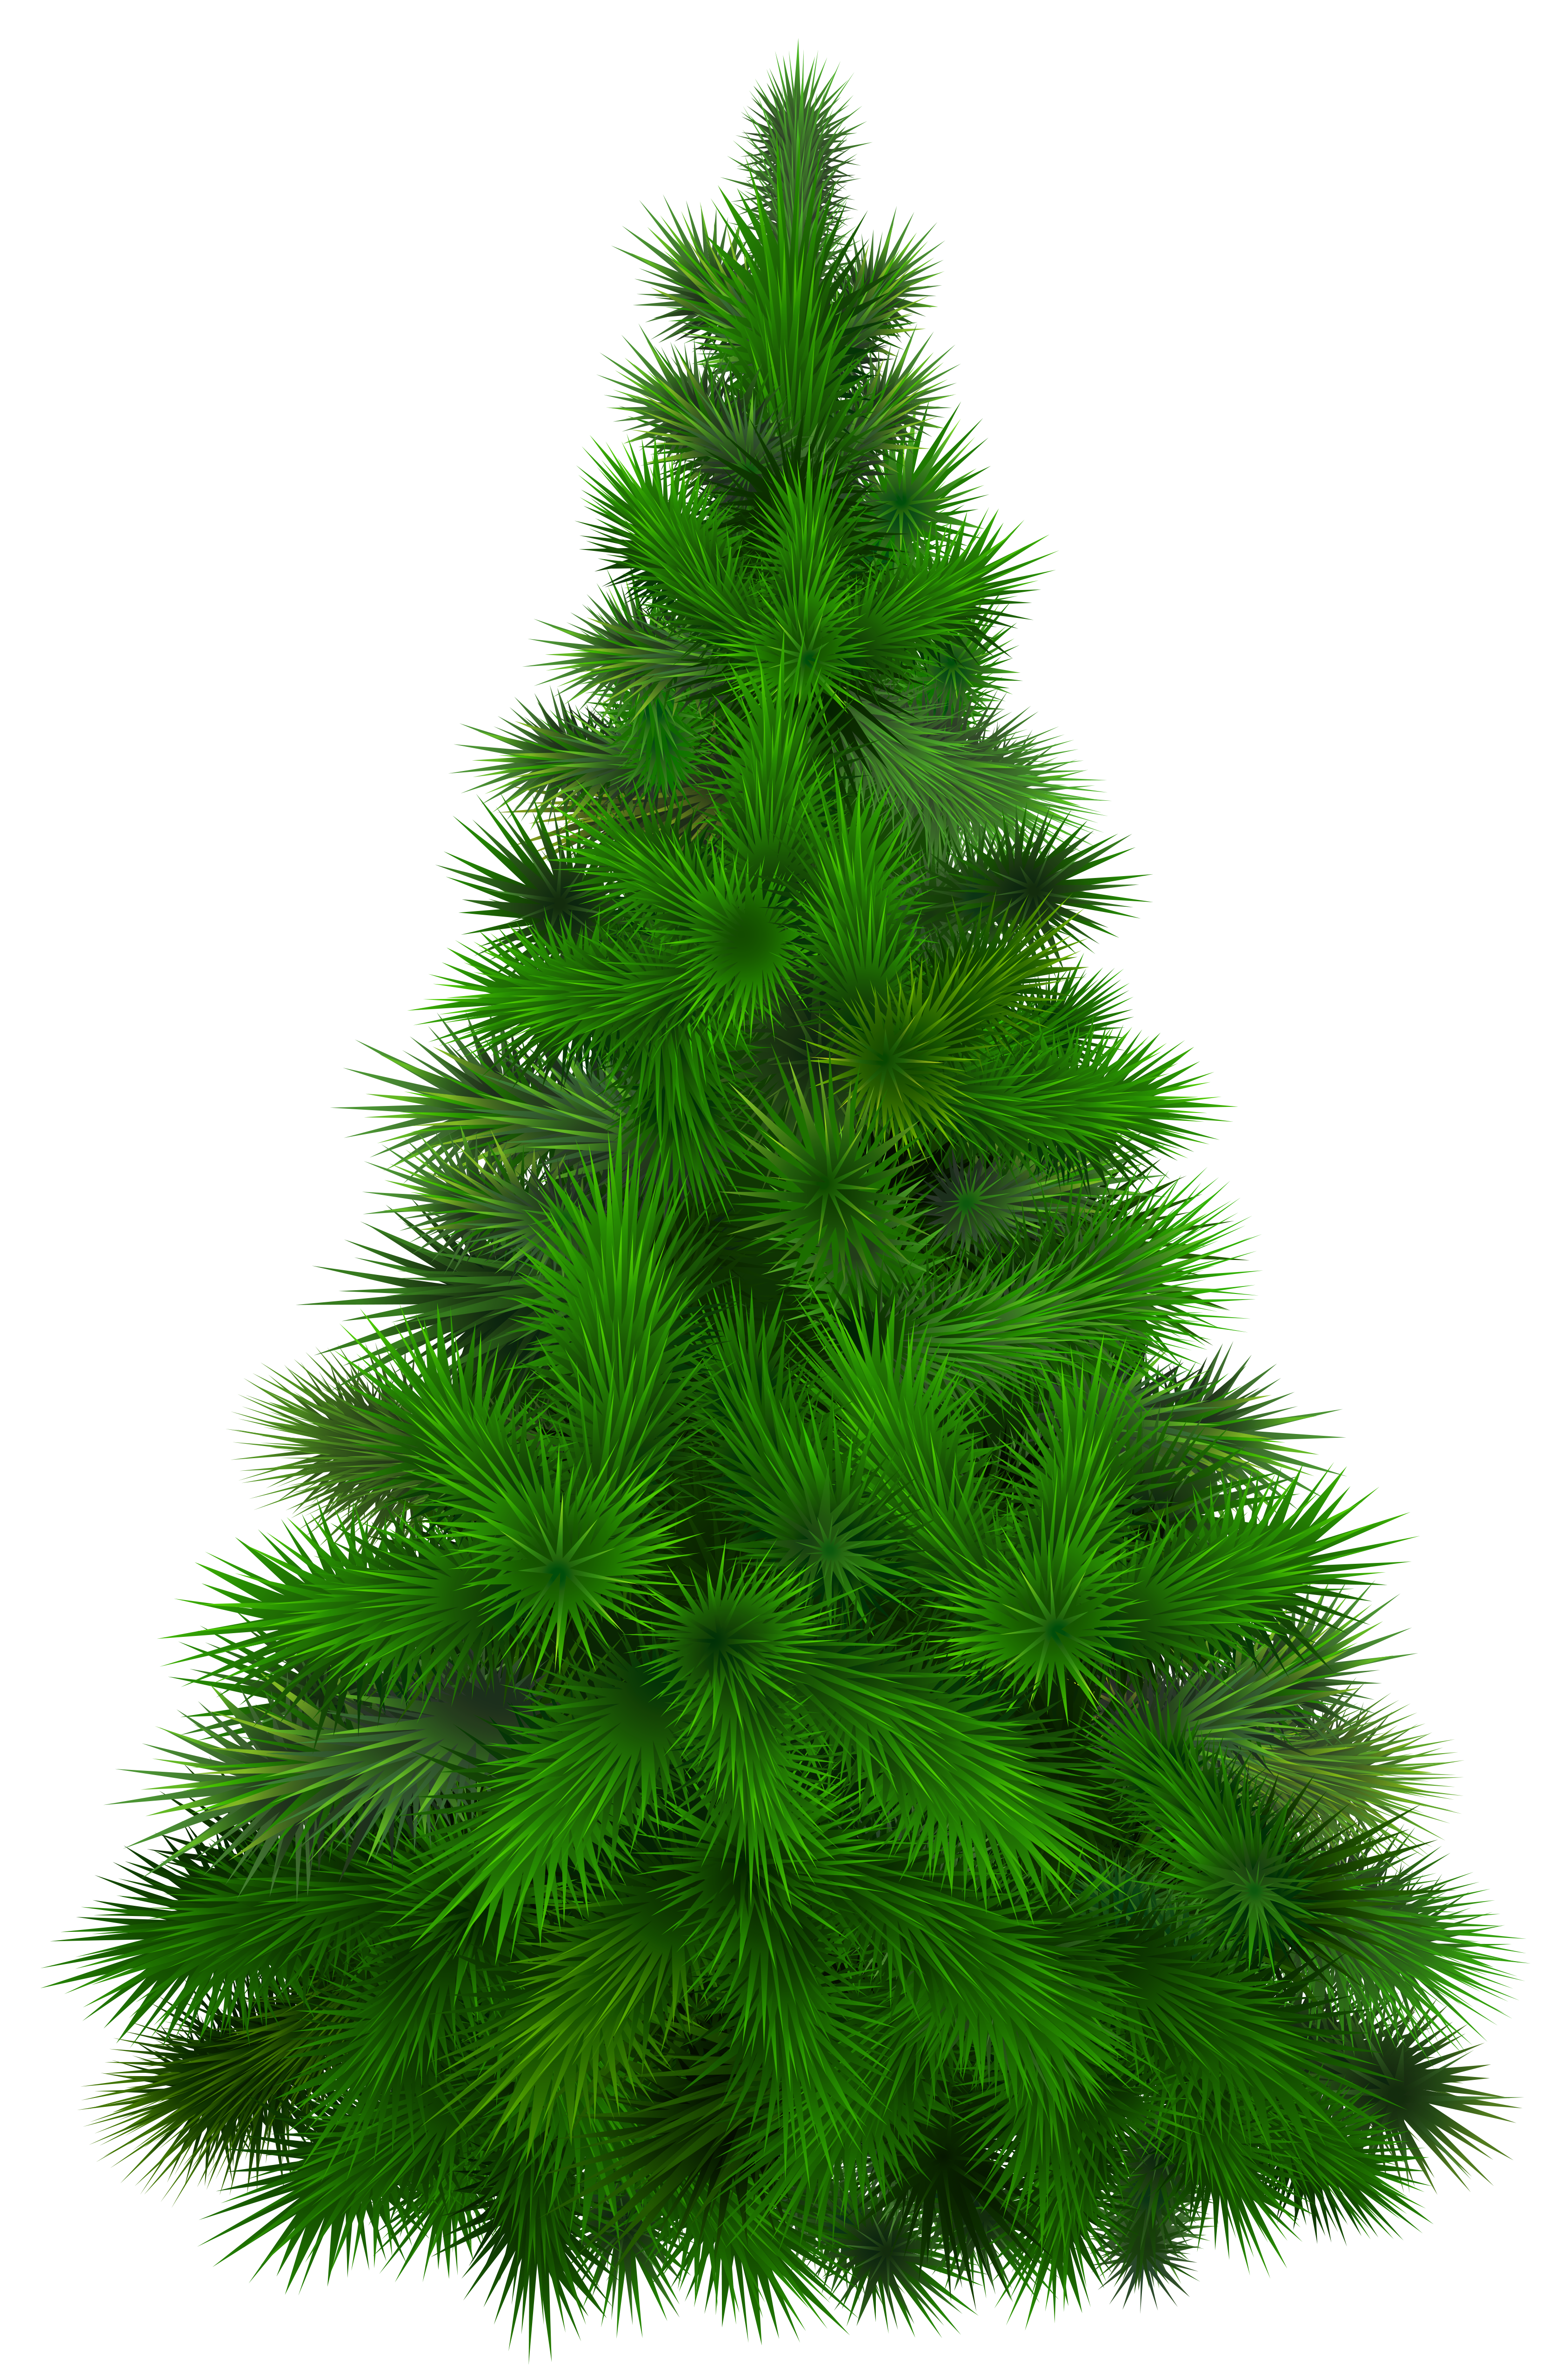 Pine Tree Clipart Cypress Tree Pencil And In Color Pine Cypress Trees Tree Clipart Pine Tree Silhouette